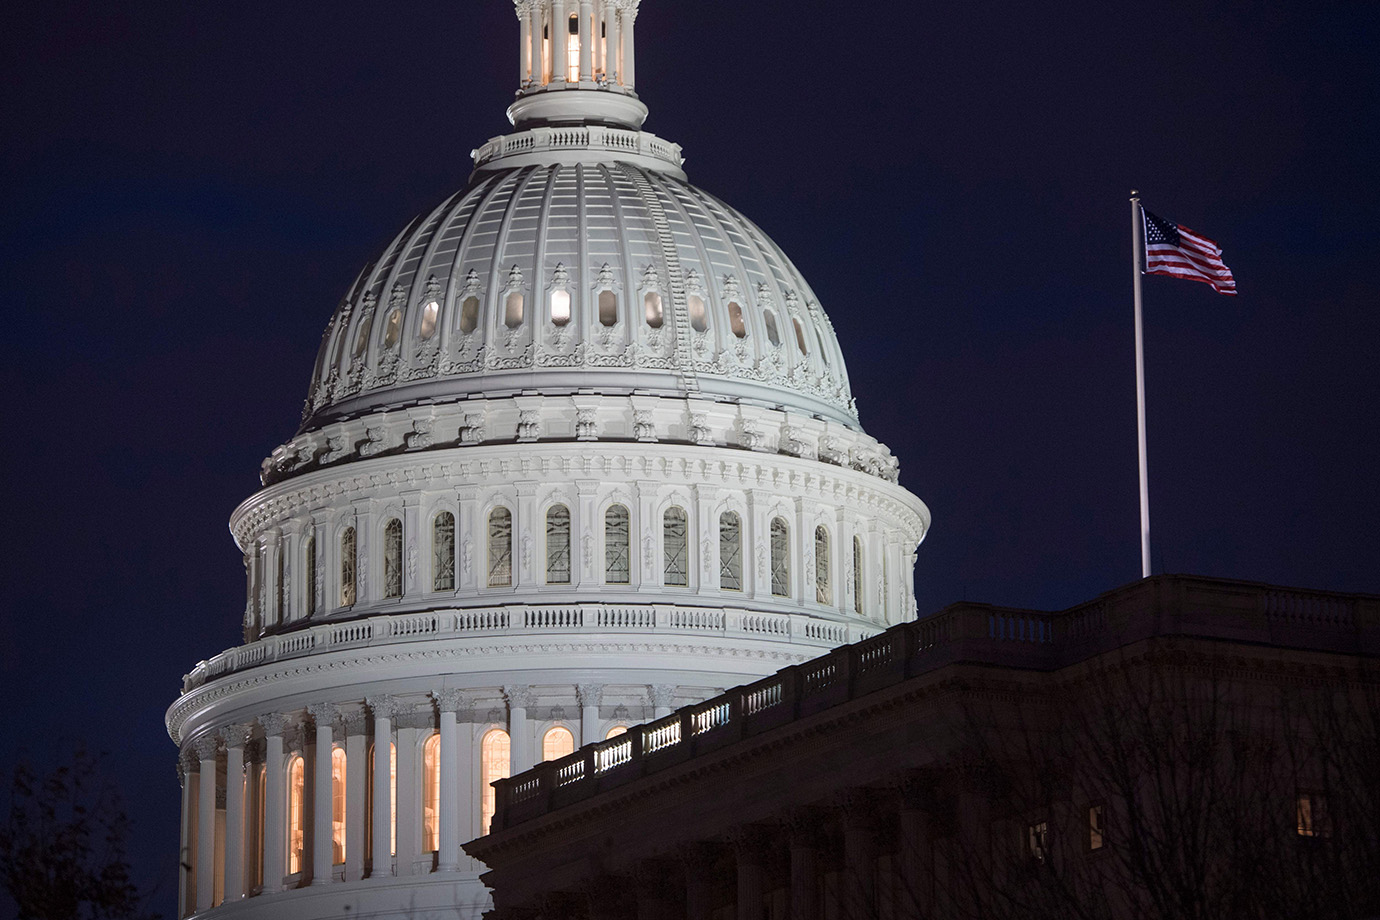 The US Capitol Building is seen at dusk in Washington, DC, February 6, 2018, as lawmakers work to av